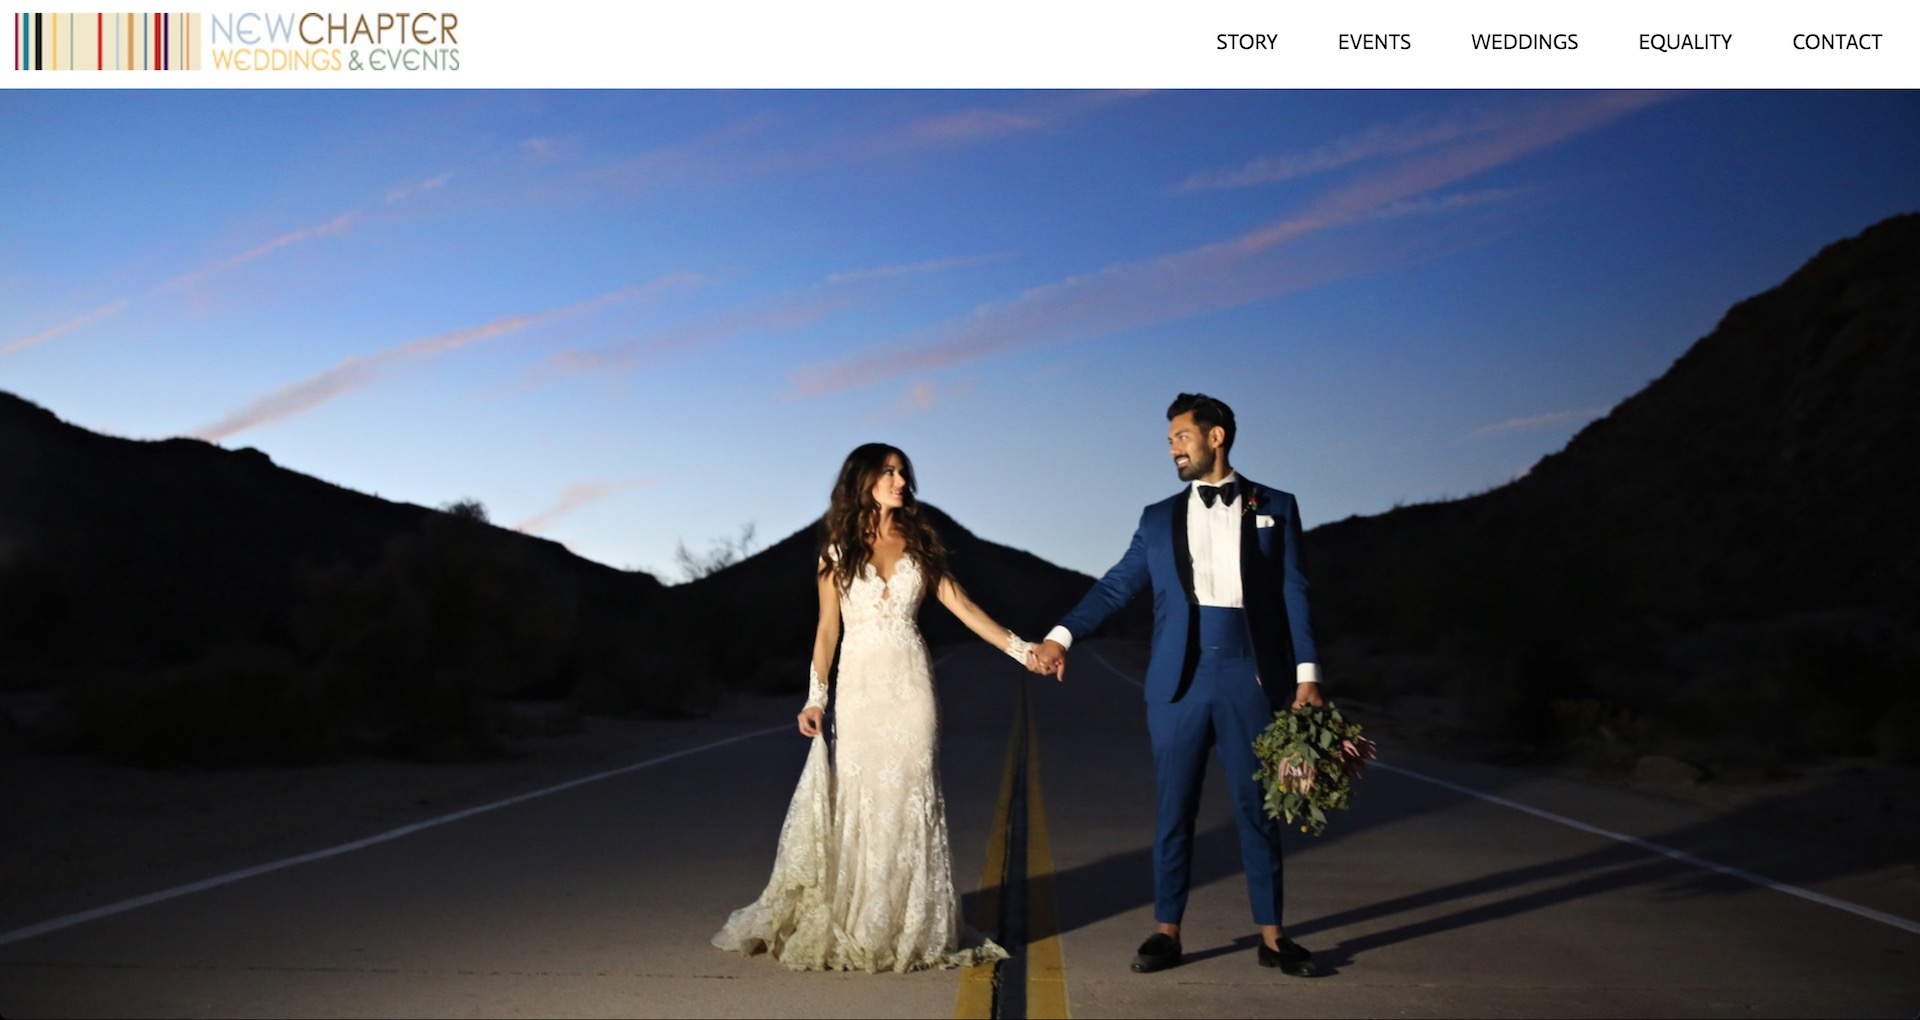 New Chapter Weddings & Events